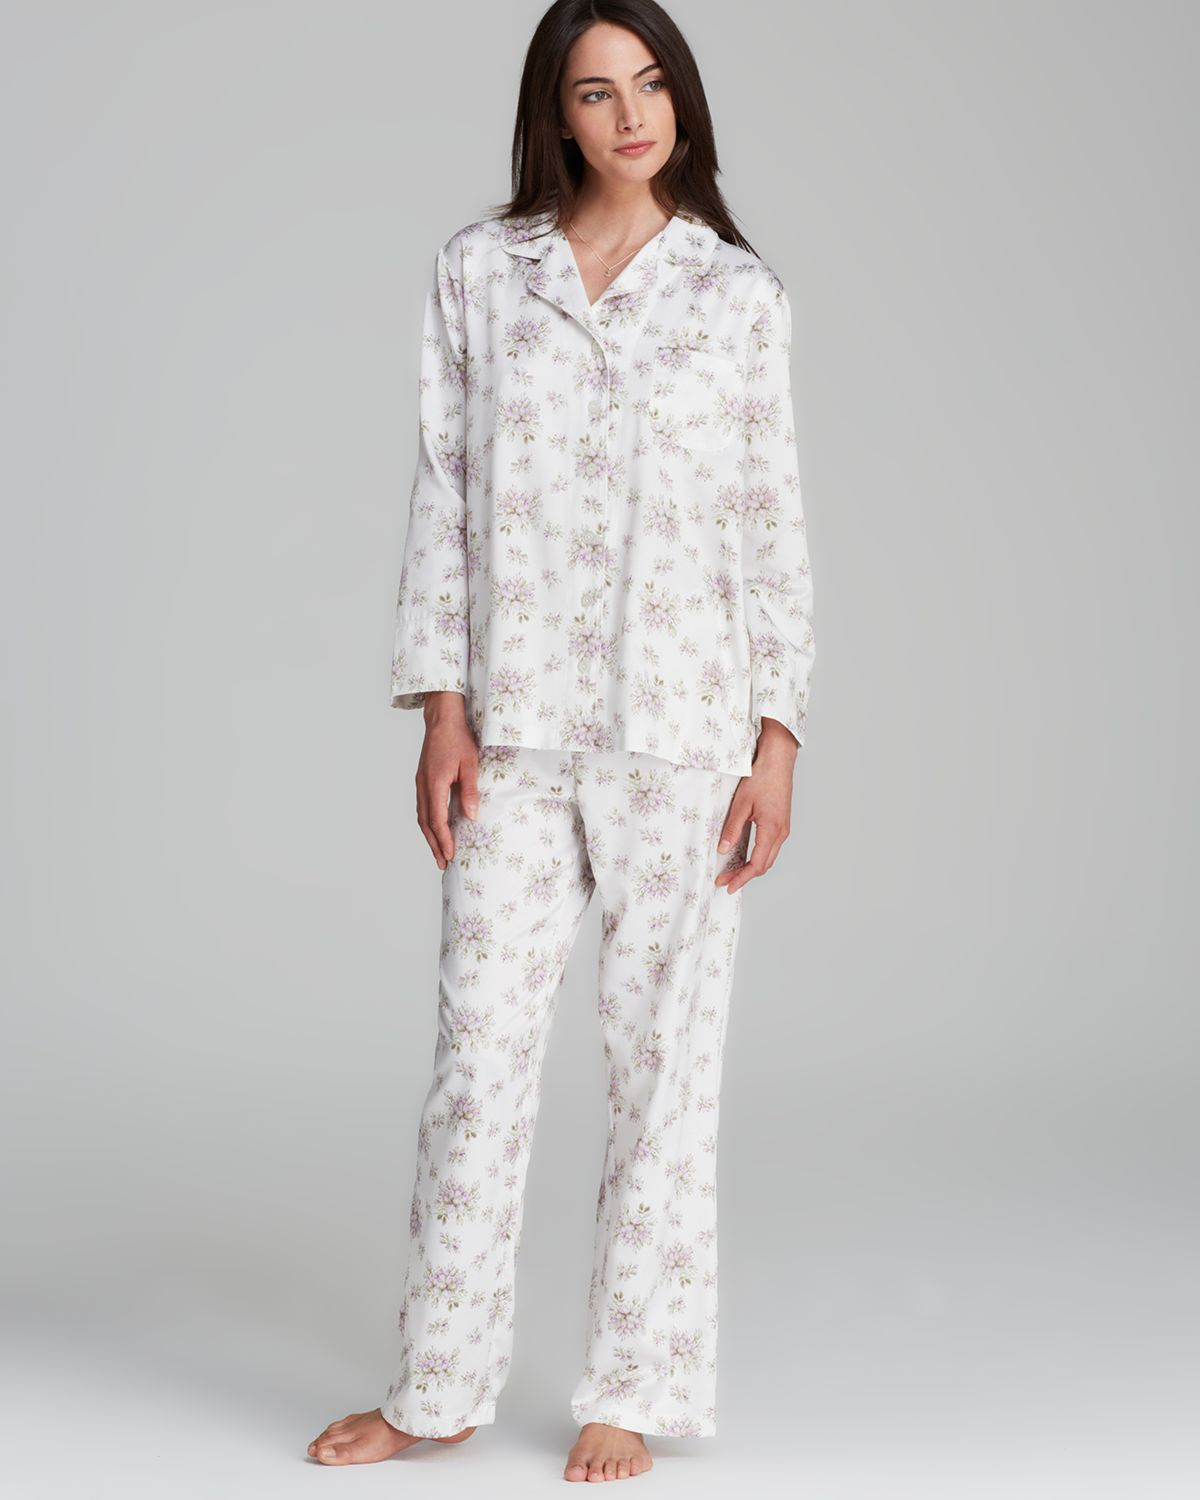 Lyst - Carole Hochman Brushed Back Satin Pajamas in Gray d0cd679cd